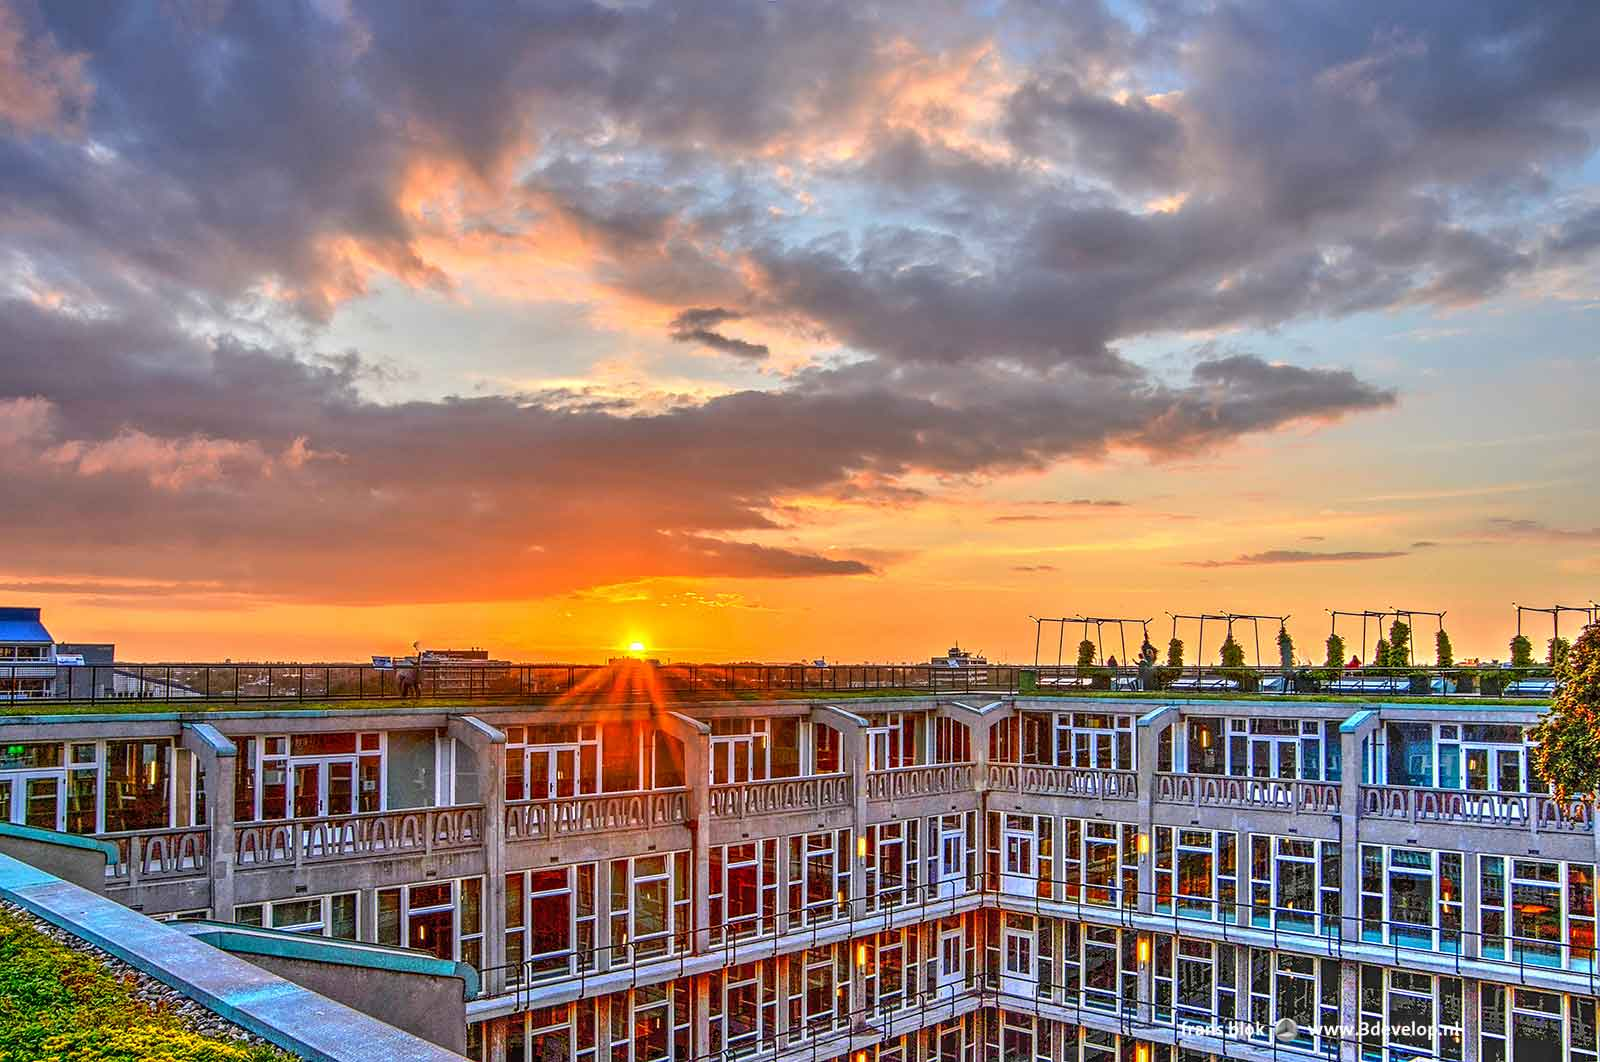 Sunset as seen from the roof of the Groothandelsgebouw in Rotterdam with one of the courtyards of the building in the foreground